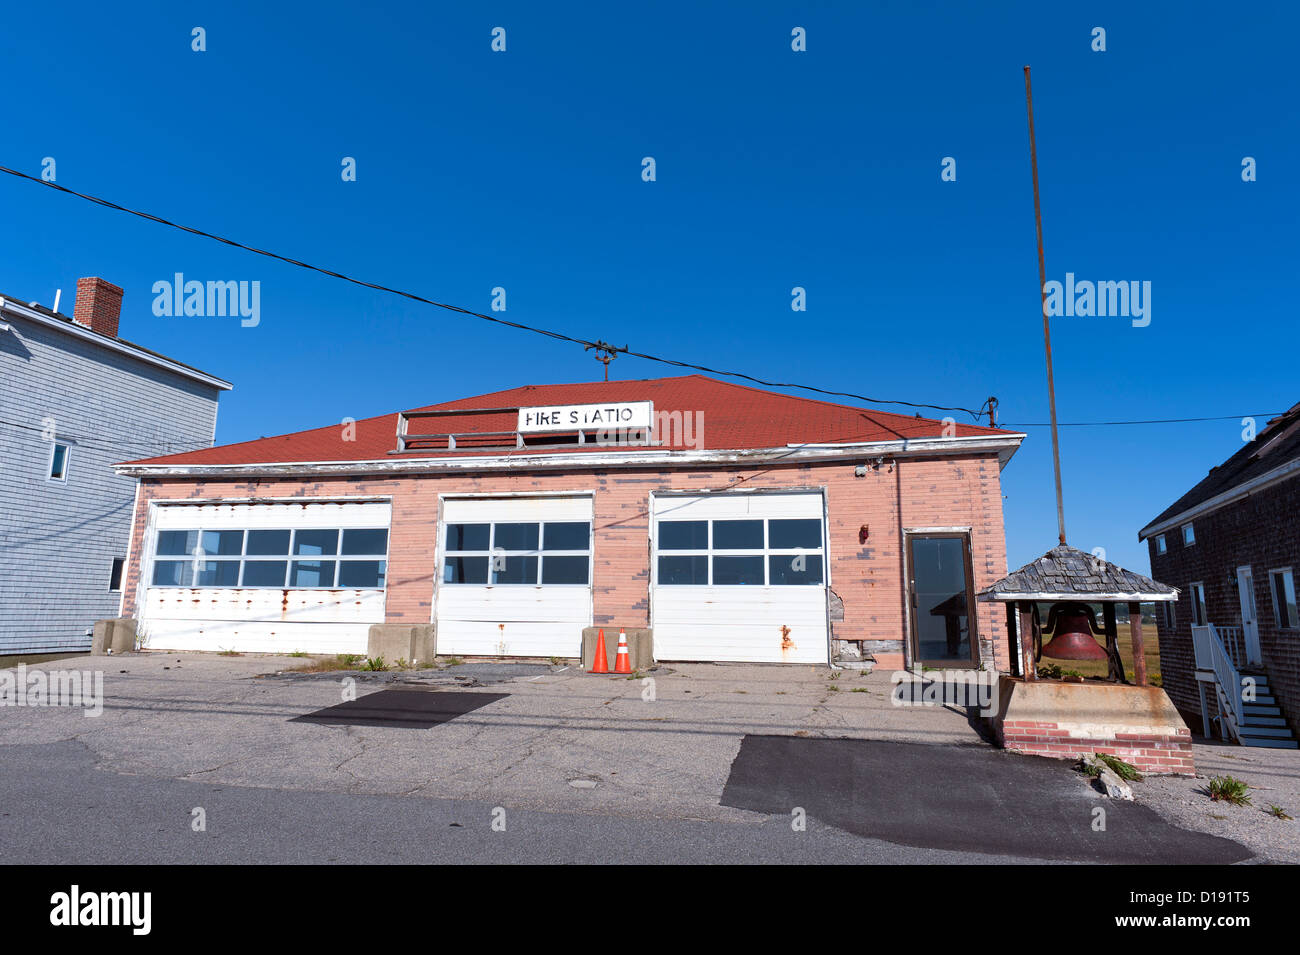 Abandoned fire station in Moody Beach, Maine, USA. - Stock Image